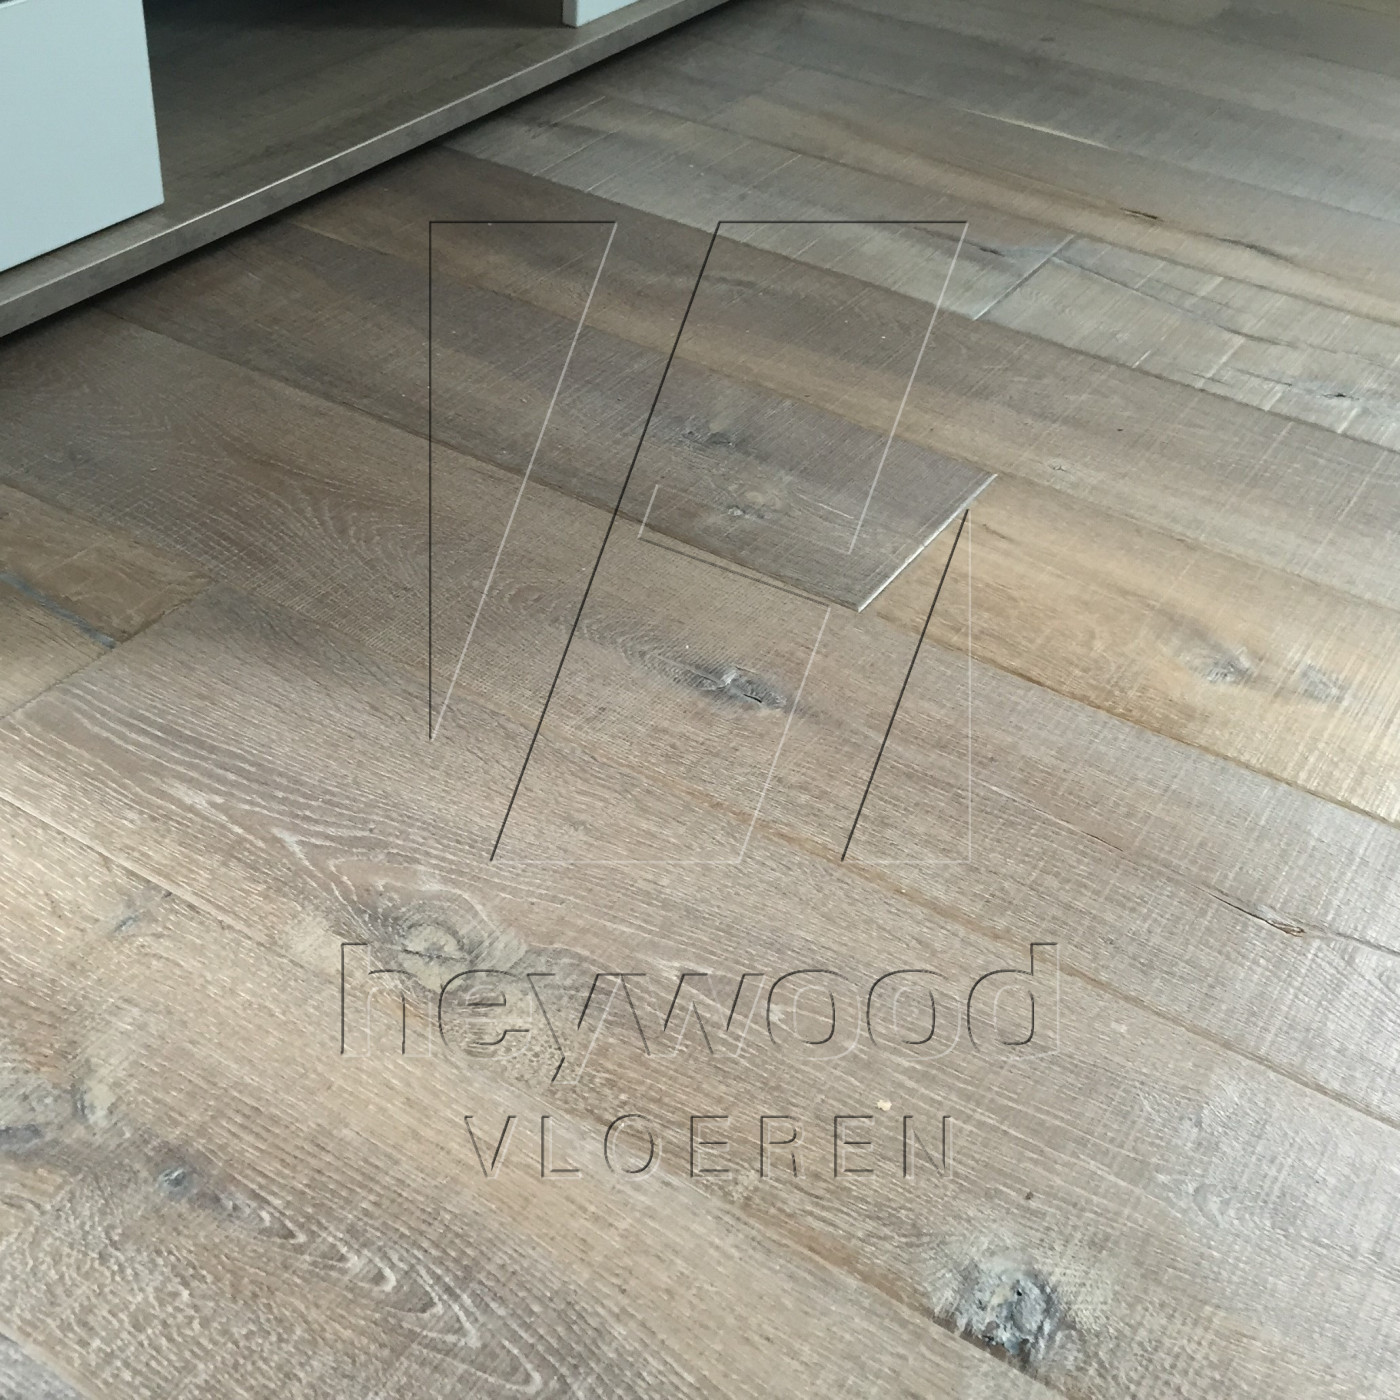 Knotting Hill Plank 'Gotland' (Roomset) in Floor & Wall Panels of Pattern & Panel Floors